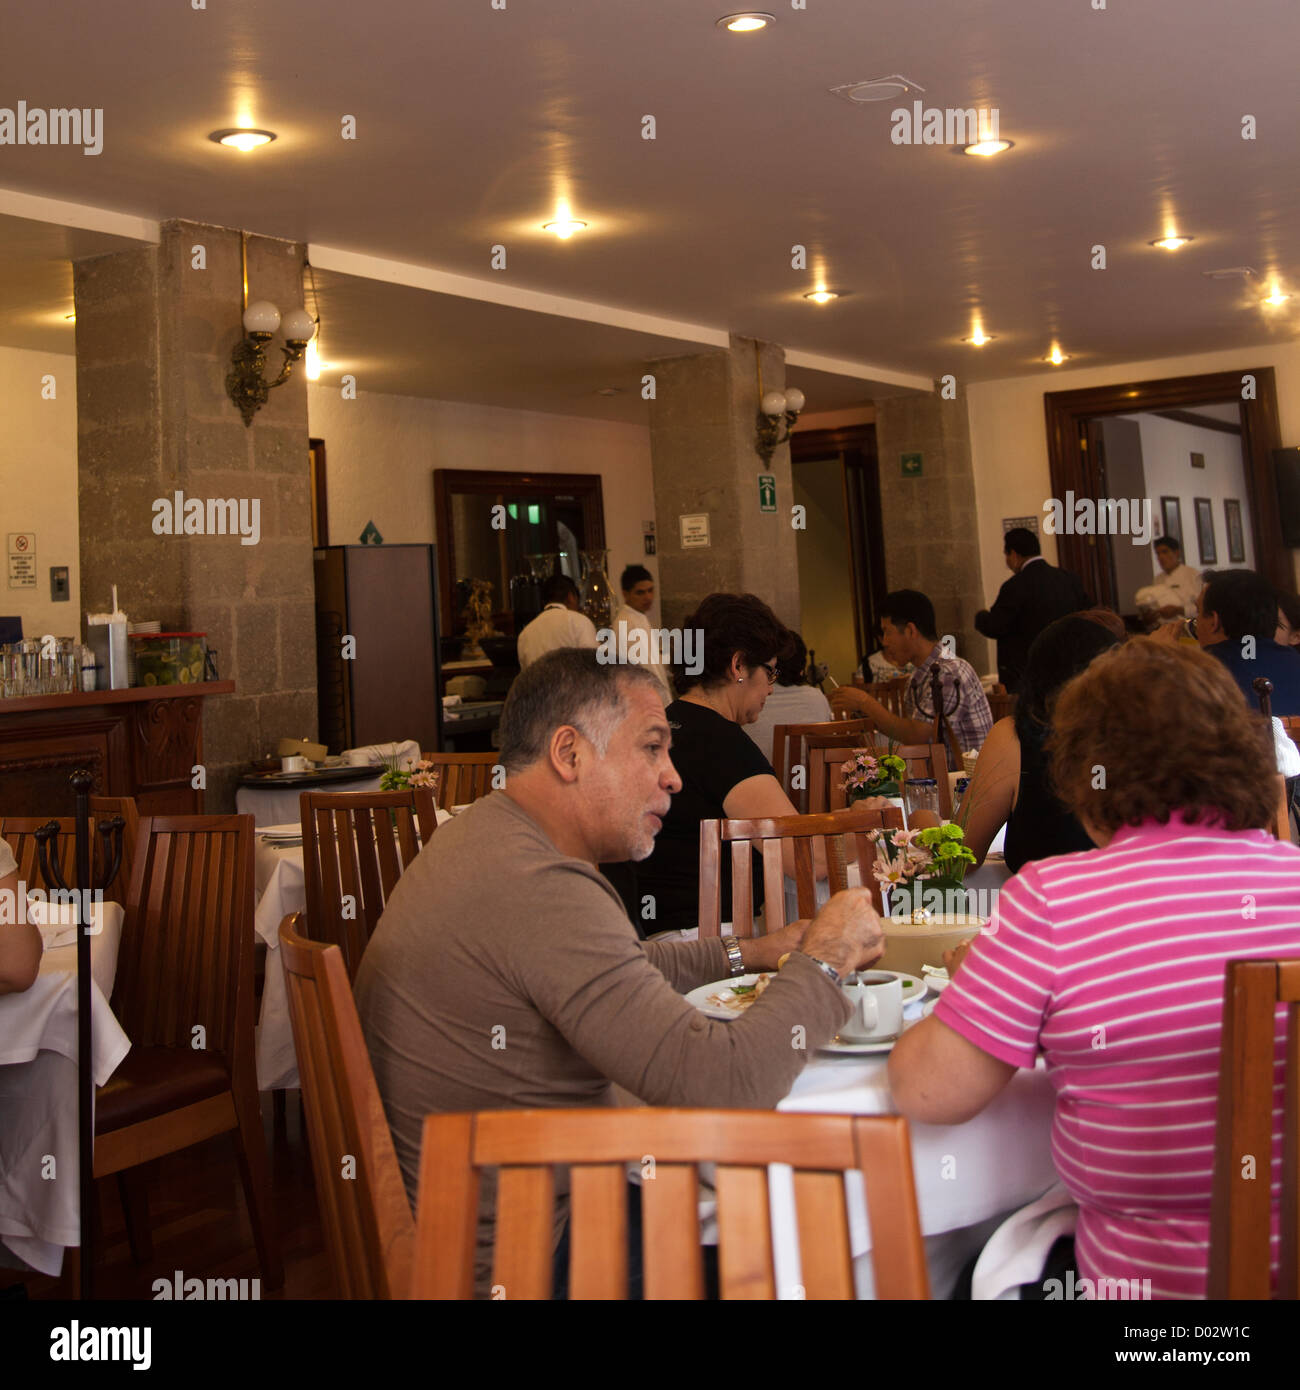 Lunch at El Cardenal Restaurant in Mexico City DF - Stock Image